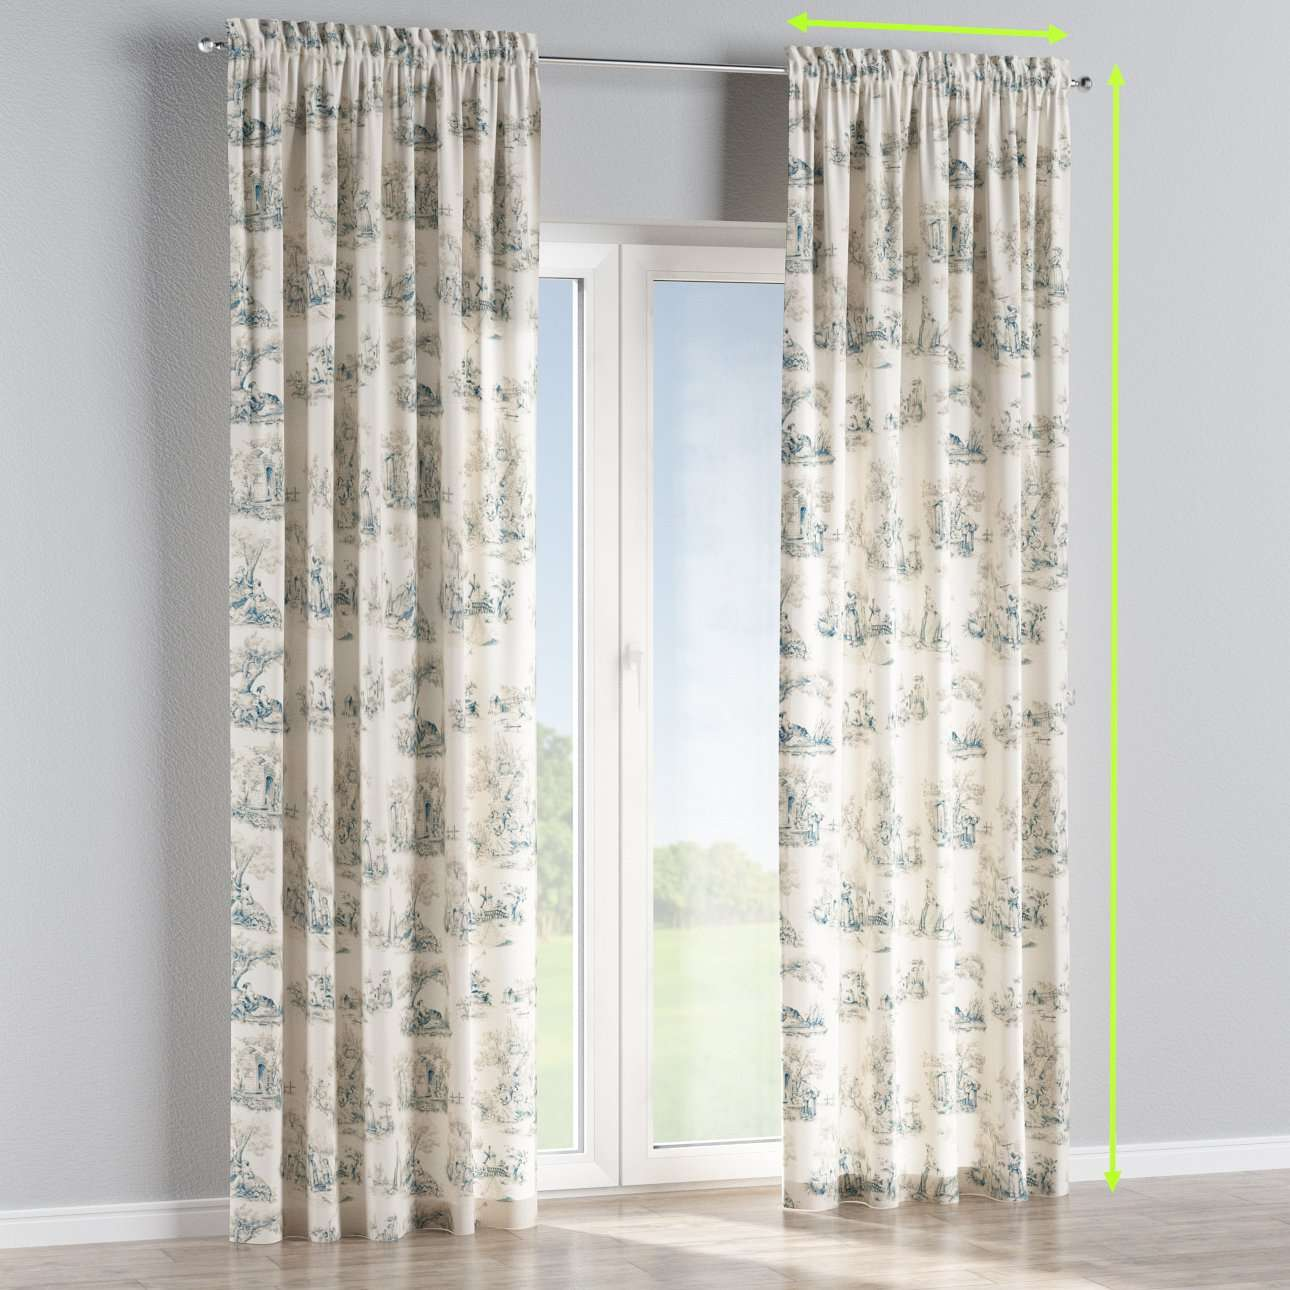 Slot and frill lined curtains in collection Avinon, fabric: 132-66